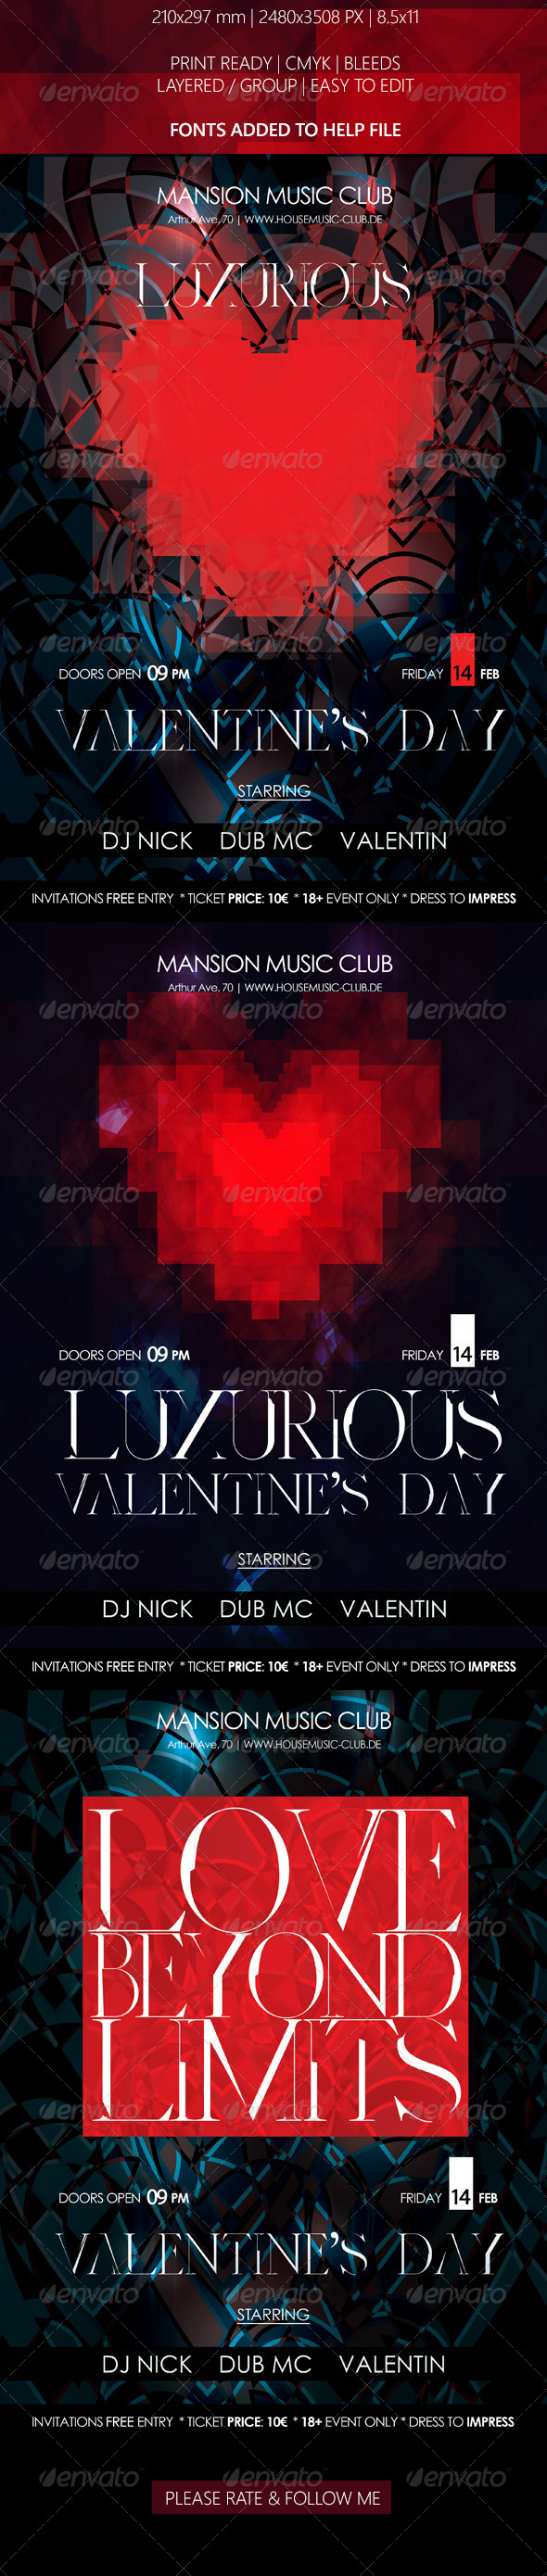 GraphicRiver Valentine s Day Luxurious Poster 6498253